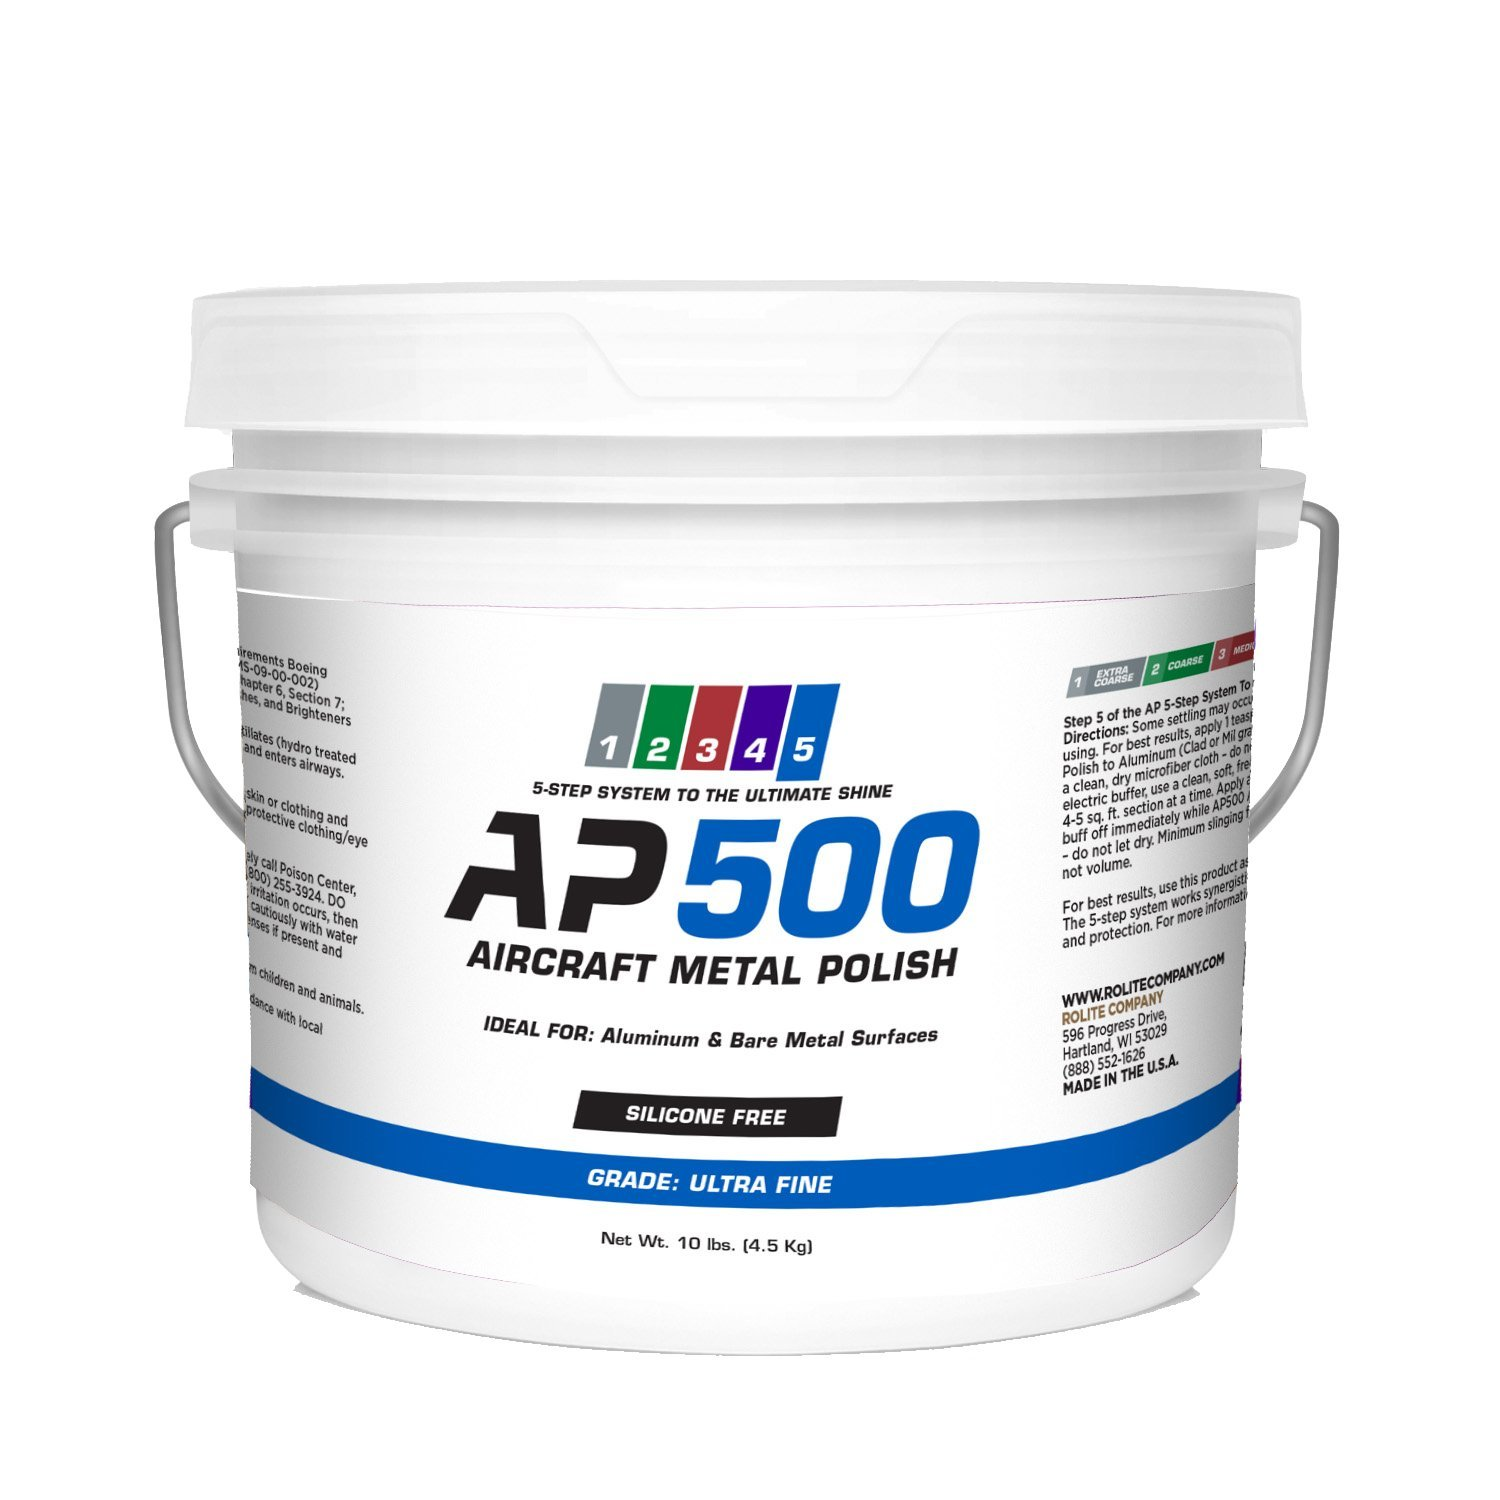 AP500 Aircraft Metal Polish (10lb) - Ultra Fine - for Airplane Aluminum & Bare Metal Surfaces, Brightwork, Leading Edges - Meets Requirements of Boeing and Airbus - Minimal Sling - Low Odor